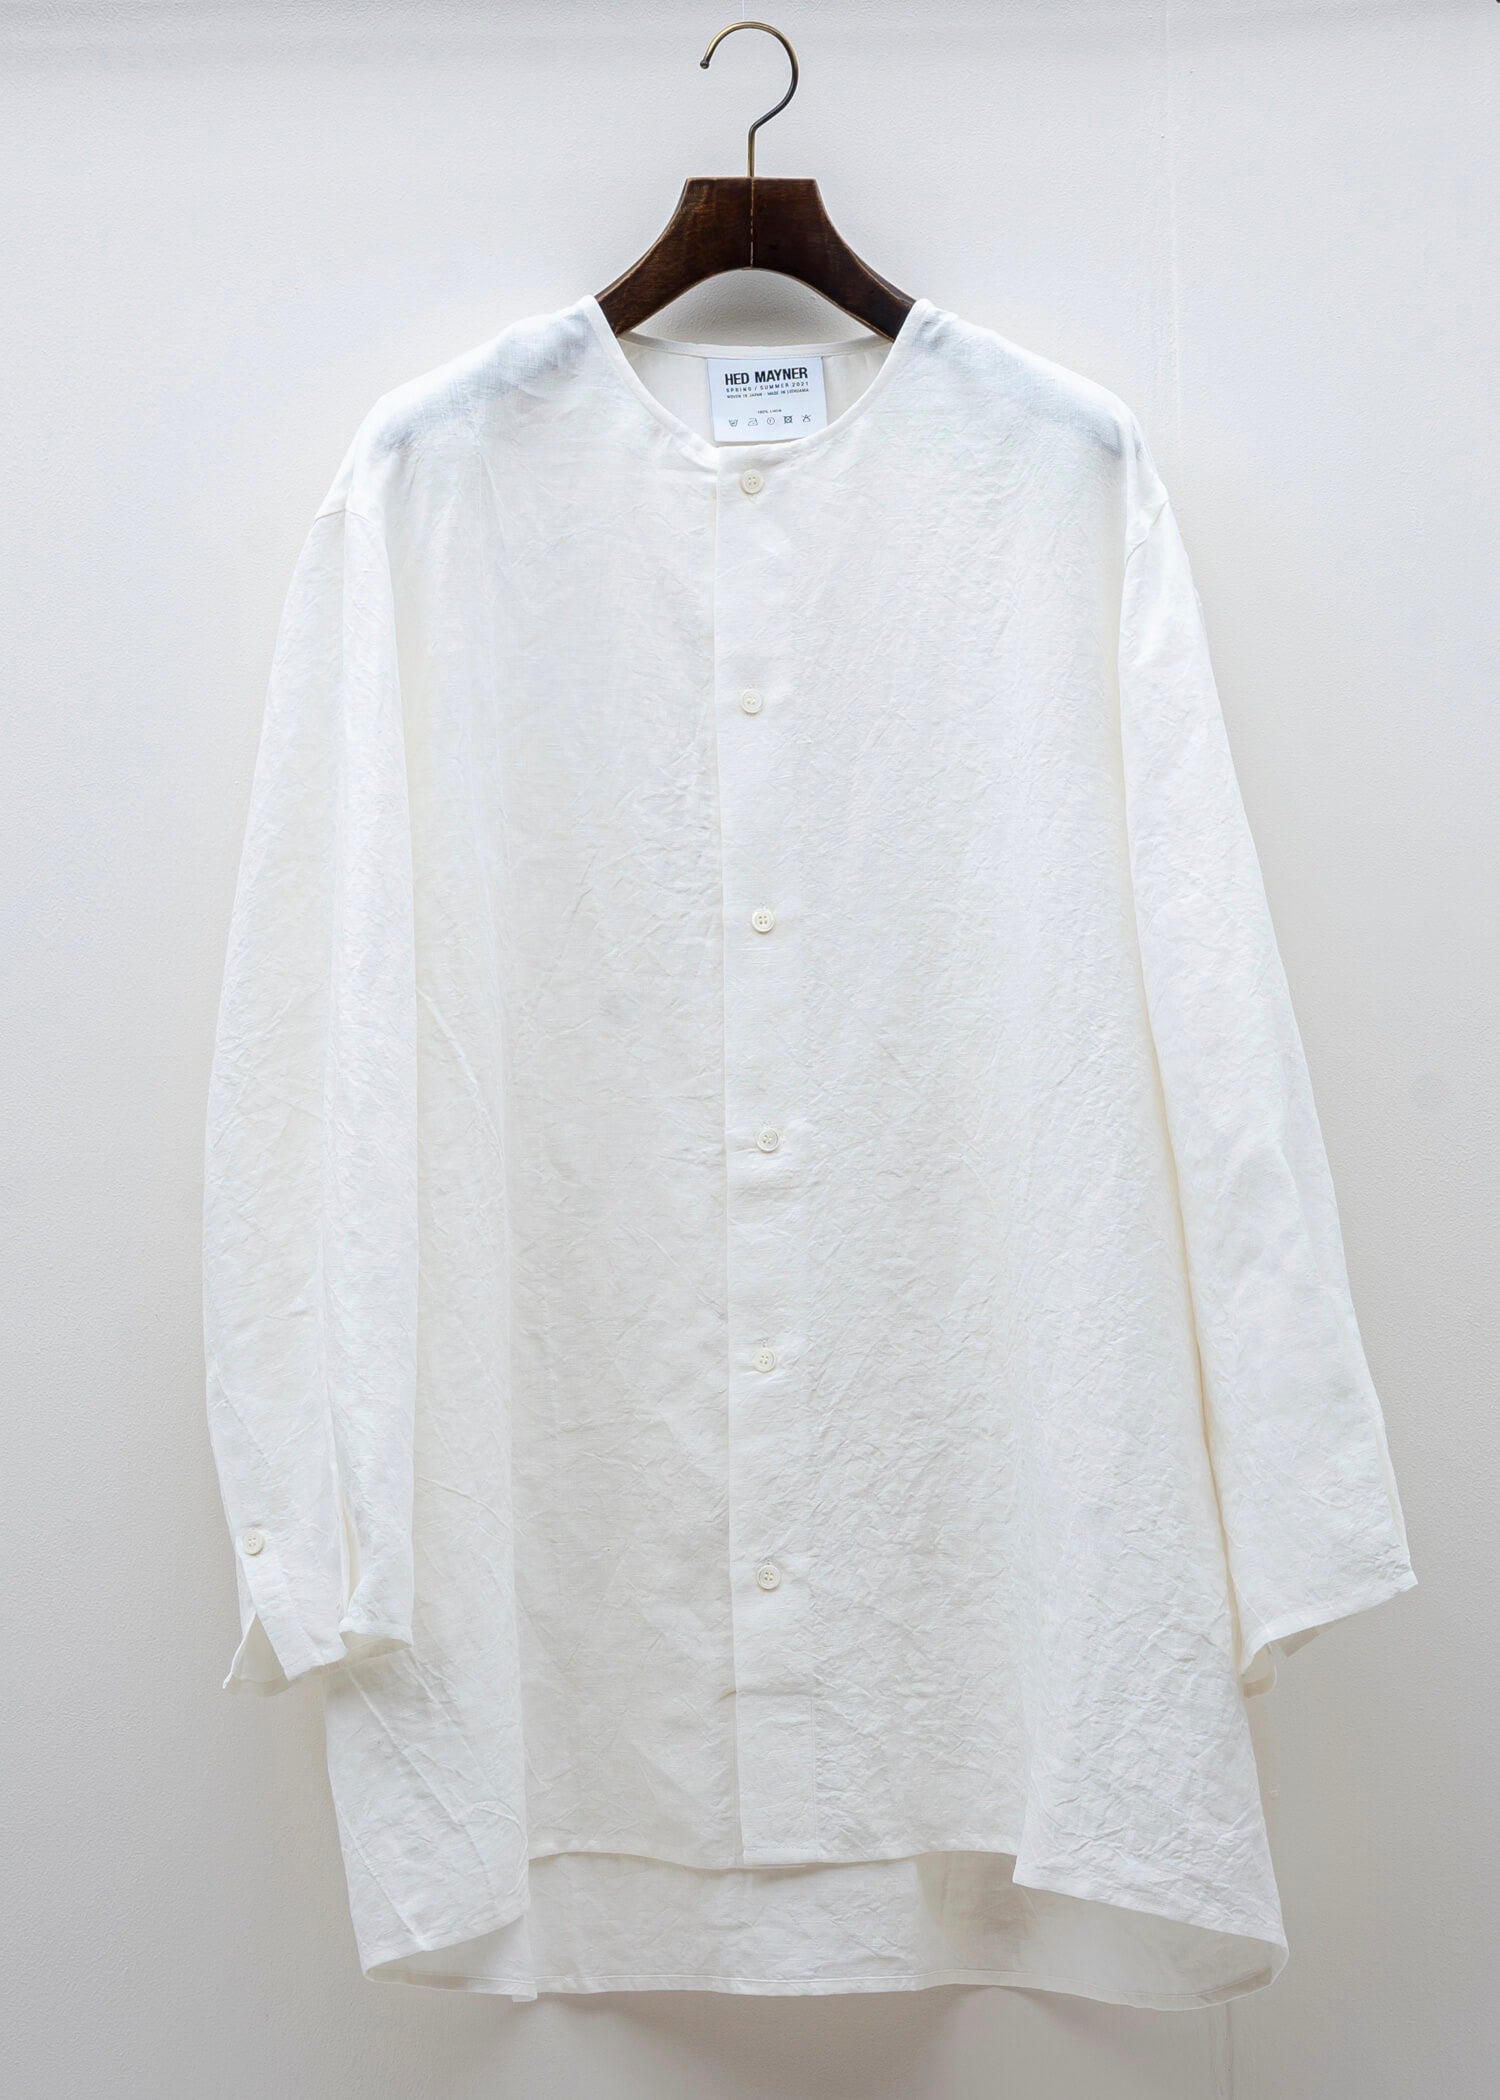 HED MAYNER / COLLARLESS BUTTON SHIRT / WHITE LINEN